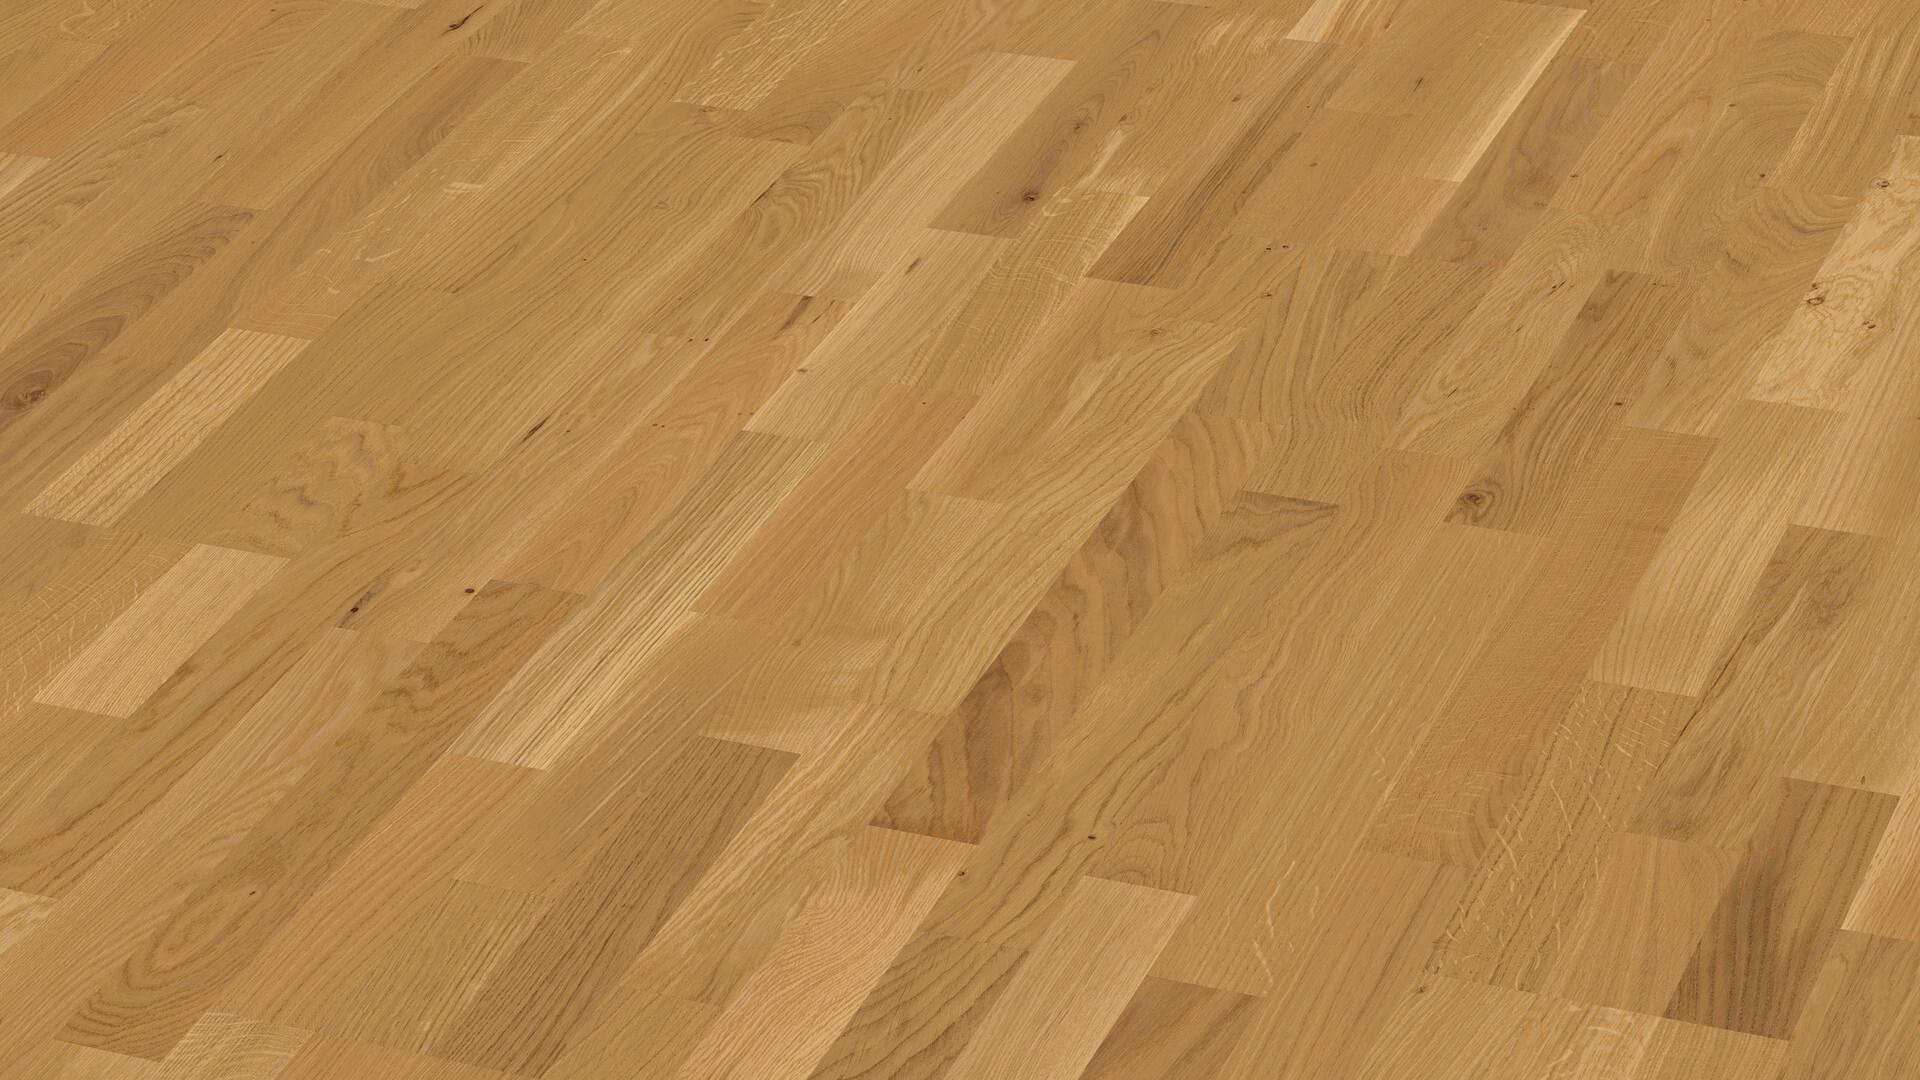 Parquet flooring MeisterParquet. longlife PC 200 Oak lively 8187